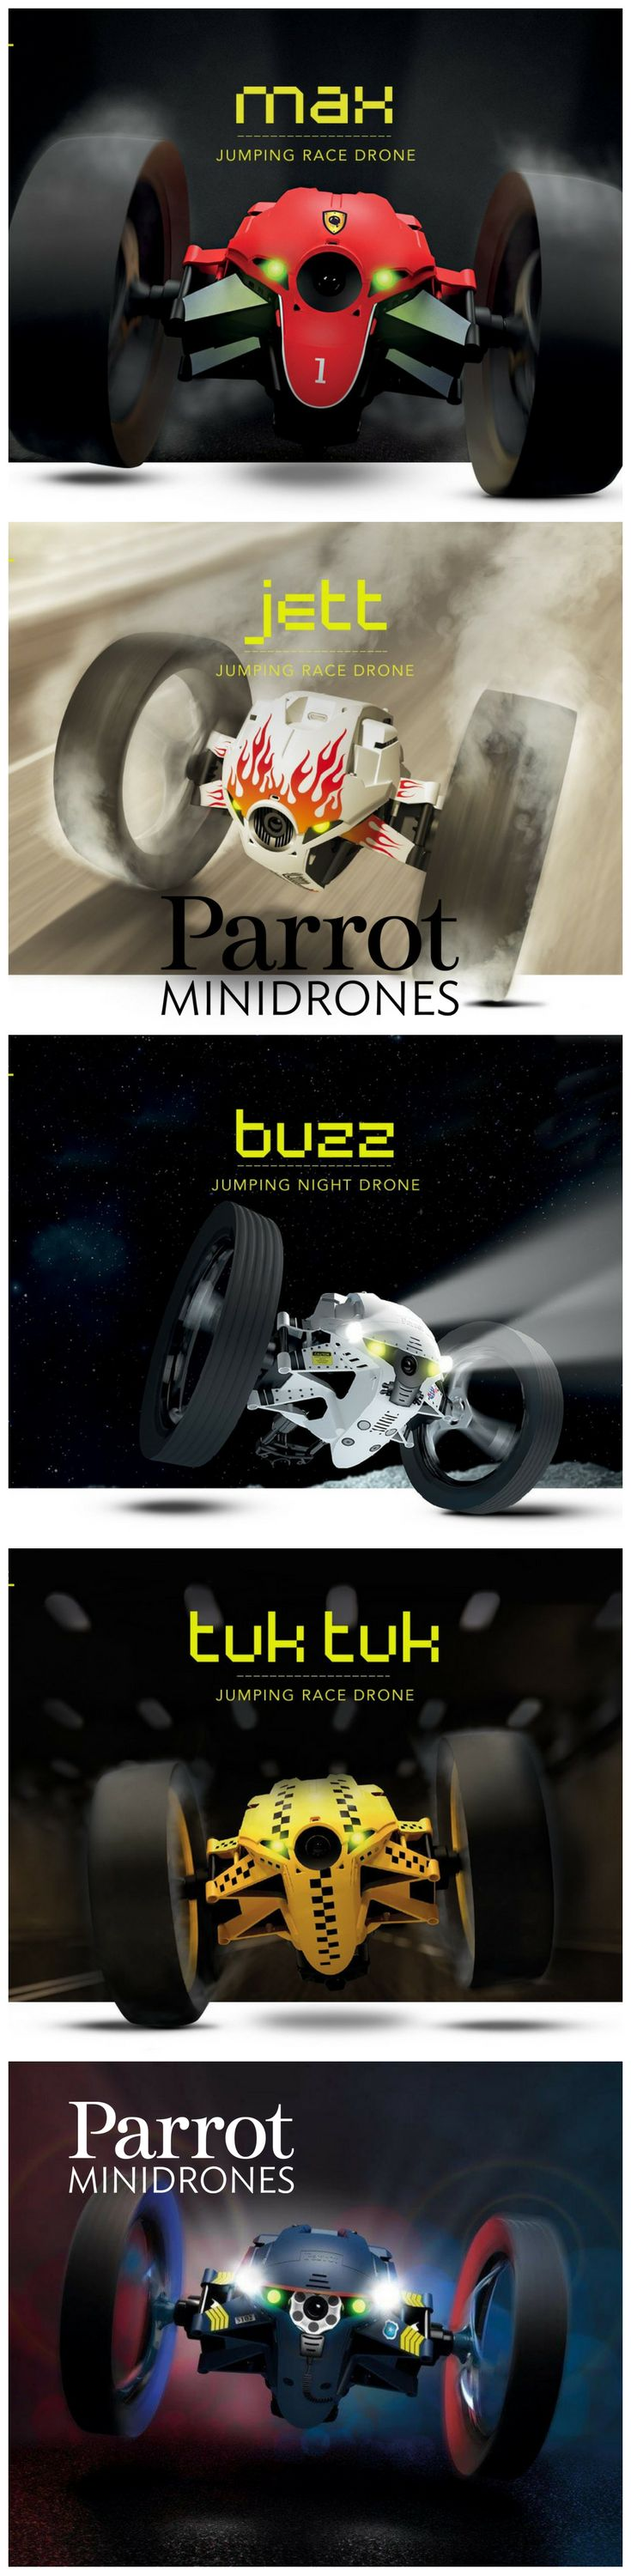 Parrot Minidrones night -OVER TO YOU!  The next game is right before your eyes! Minidrones weave in and out to find their way anywhere, from the playground to open-plan offices. Equipped with the best technology, they can race, perform aerobatics, shoot missiles, and do much more. The only limit is your imagination!